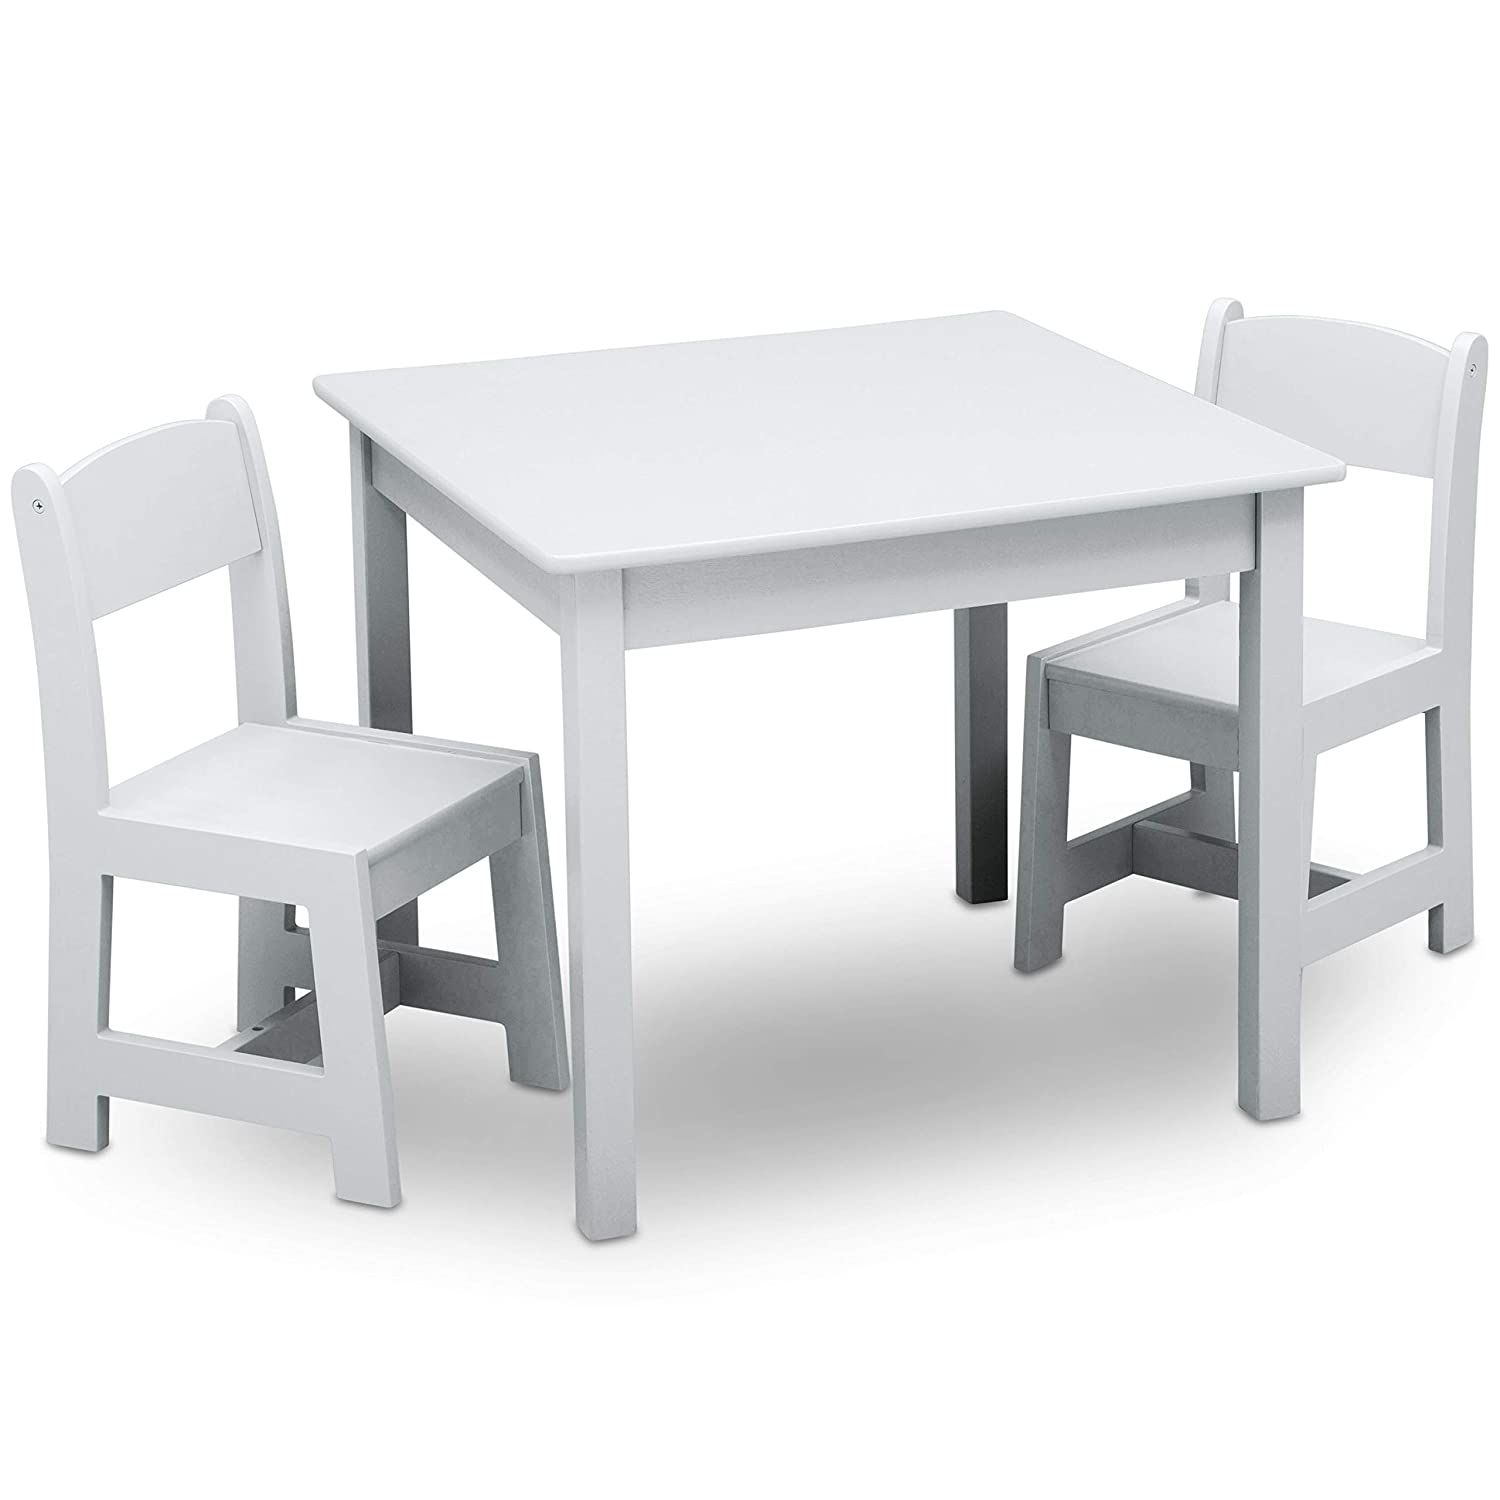 Delta Children MySize Kids Wood Table and Chair Set (2 Chairs Included), Dark Chocolate Delta Enterprise Corp - PLA TT89601GN-207